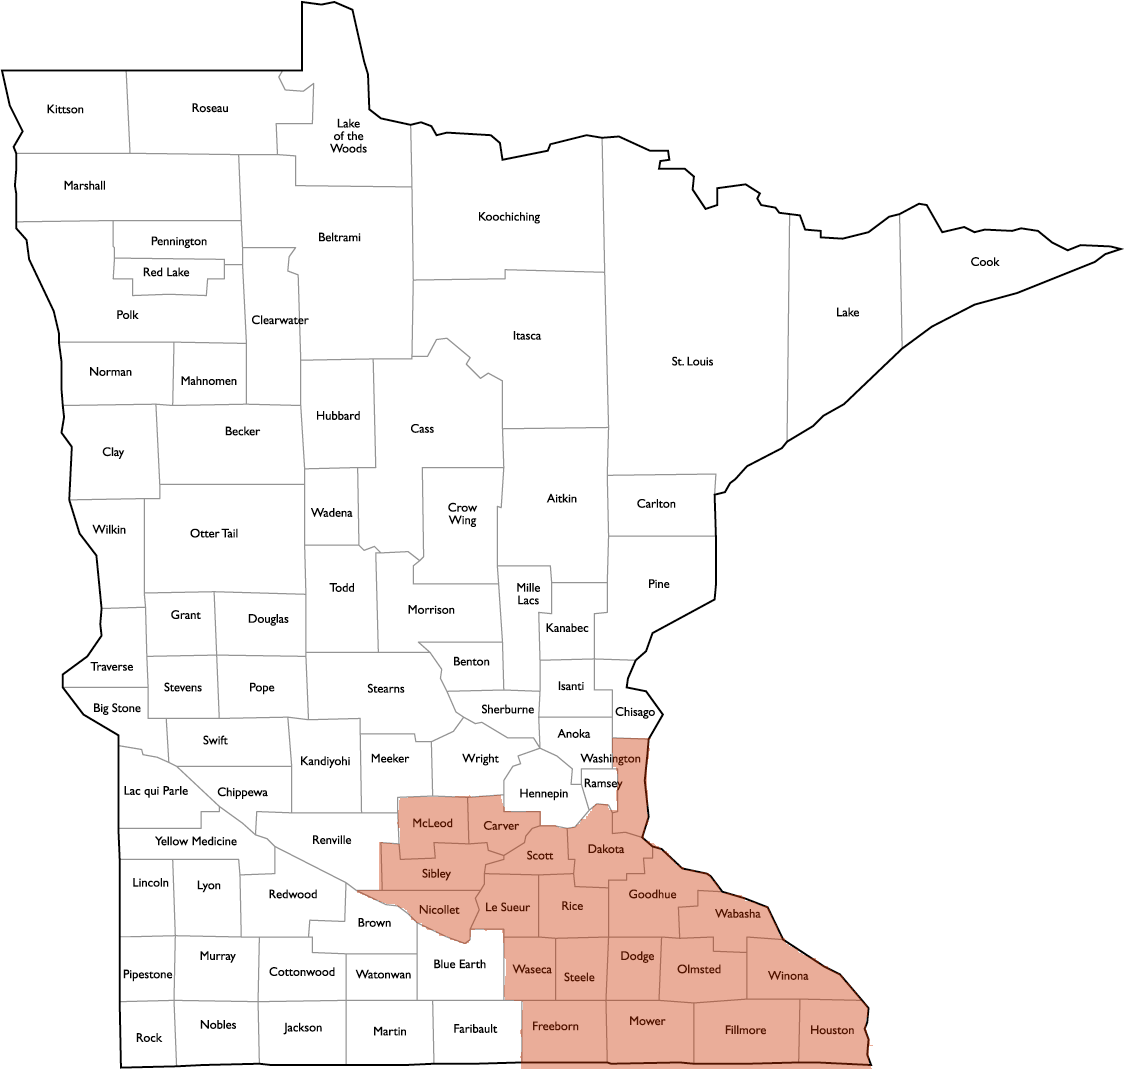 mn-southeast-district-map - General Federation of Women's ... on map of wisconsin and minnesota, map of southeast fl, map of minnesota small towns, map of southeast cu, map of southeast mt, map of all regions, map of southeast bc, map of twin cities metro, map of iowa area, map of minneapolis suburbs, map of southeast asia, map of minnesota cities and towns, map of northeast iowa, map of south dakota and minnesota, map of northern minnesota cities, map of southeast ct, map of minneapolis/st. paul, map of southeast ak, map of mankato, city of winona mn,